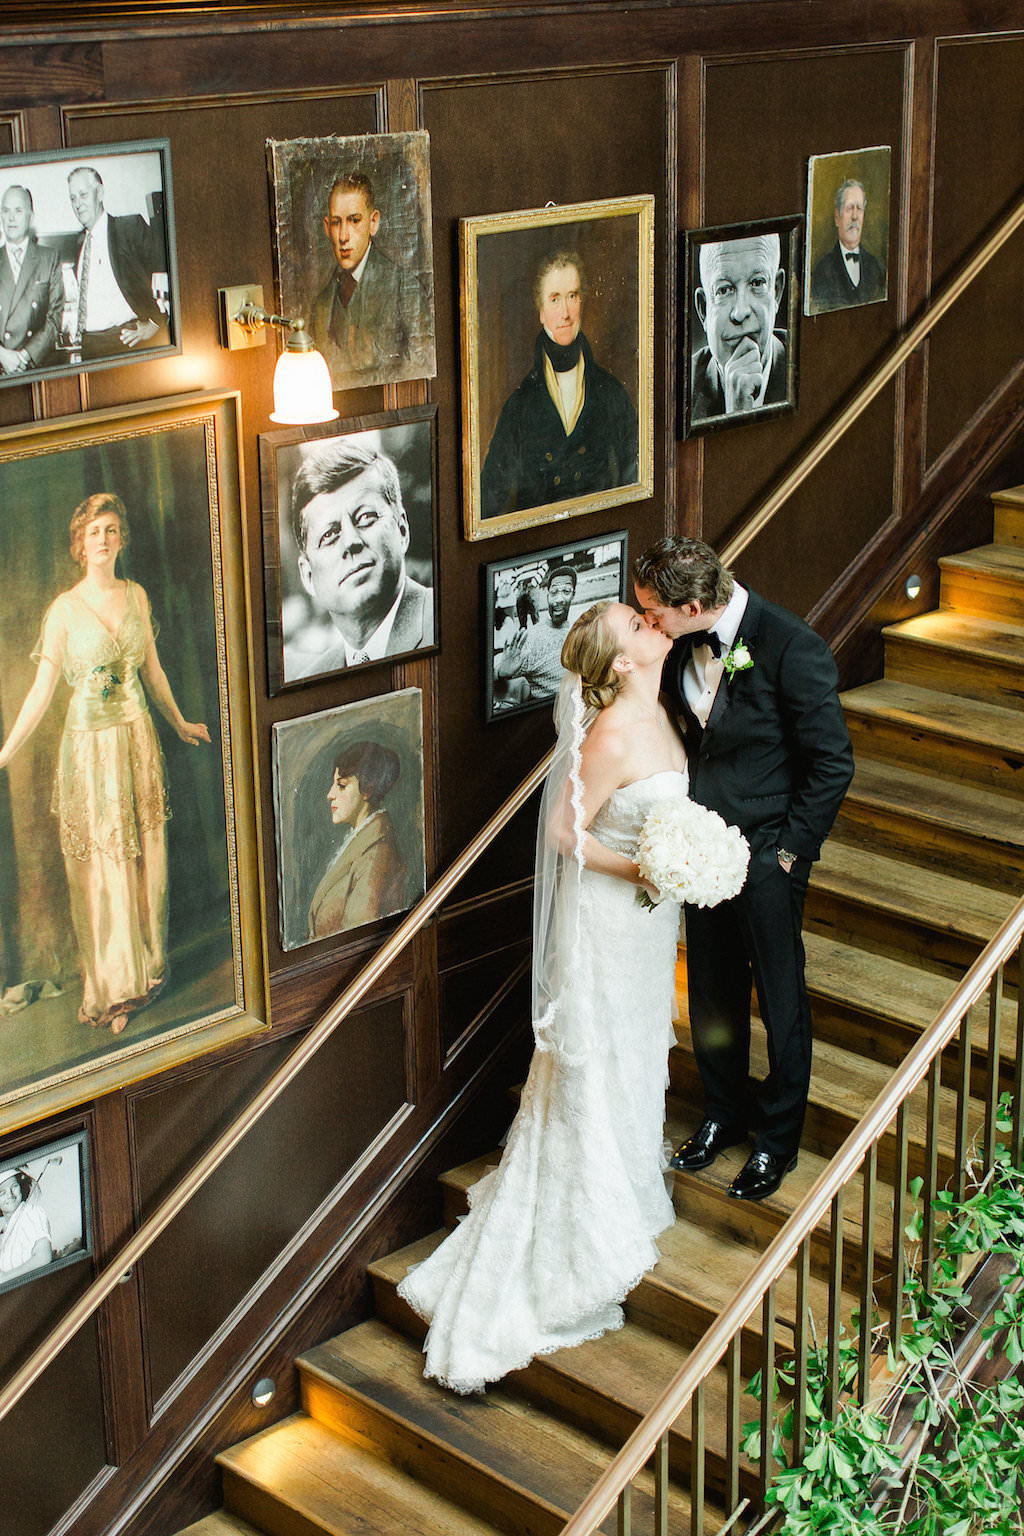 Indoor Staircase Bride and Groom Portrait with Vintage Portraits   Tampa Bay Wedding Photographer Ailyn La Torre Photography   Venue The Oxford Exchange